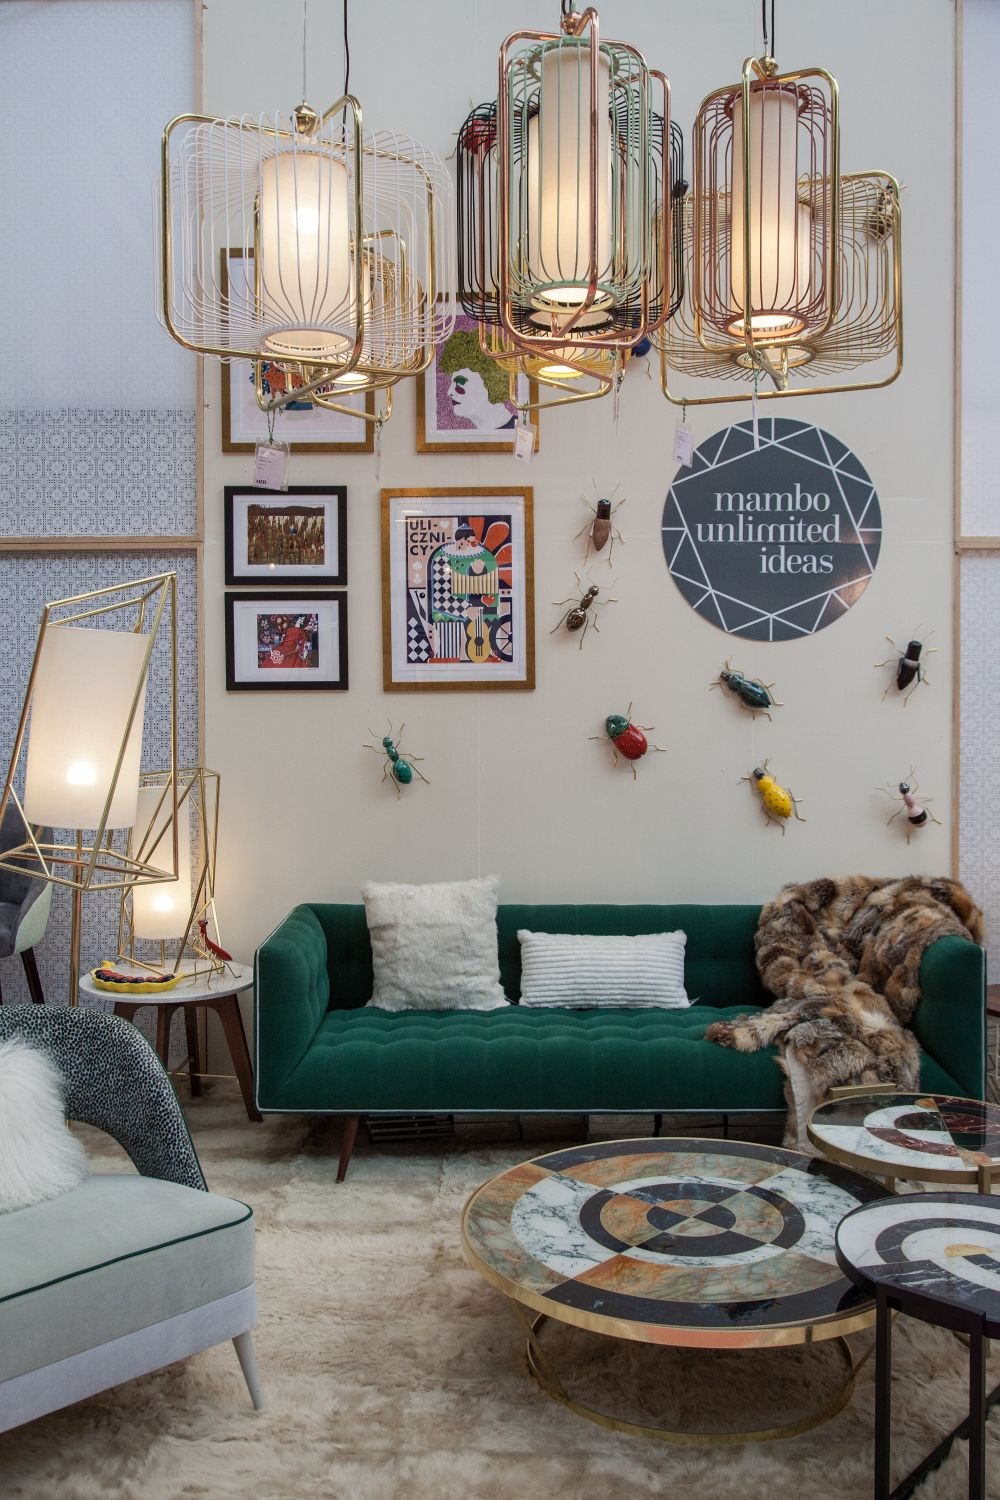 Fun Wall Designs To Turn a Blank Space into a Terrific Decor Element